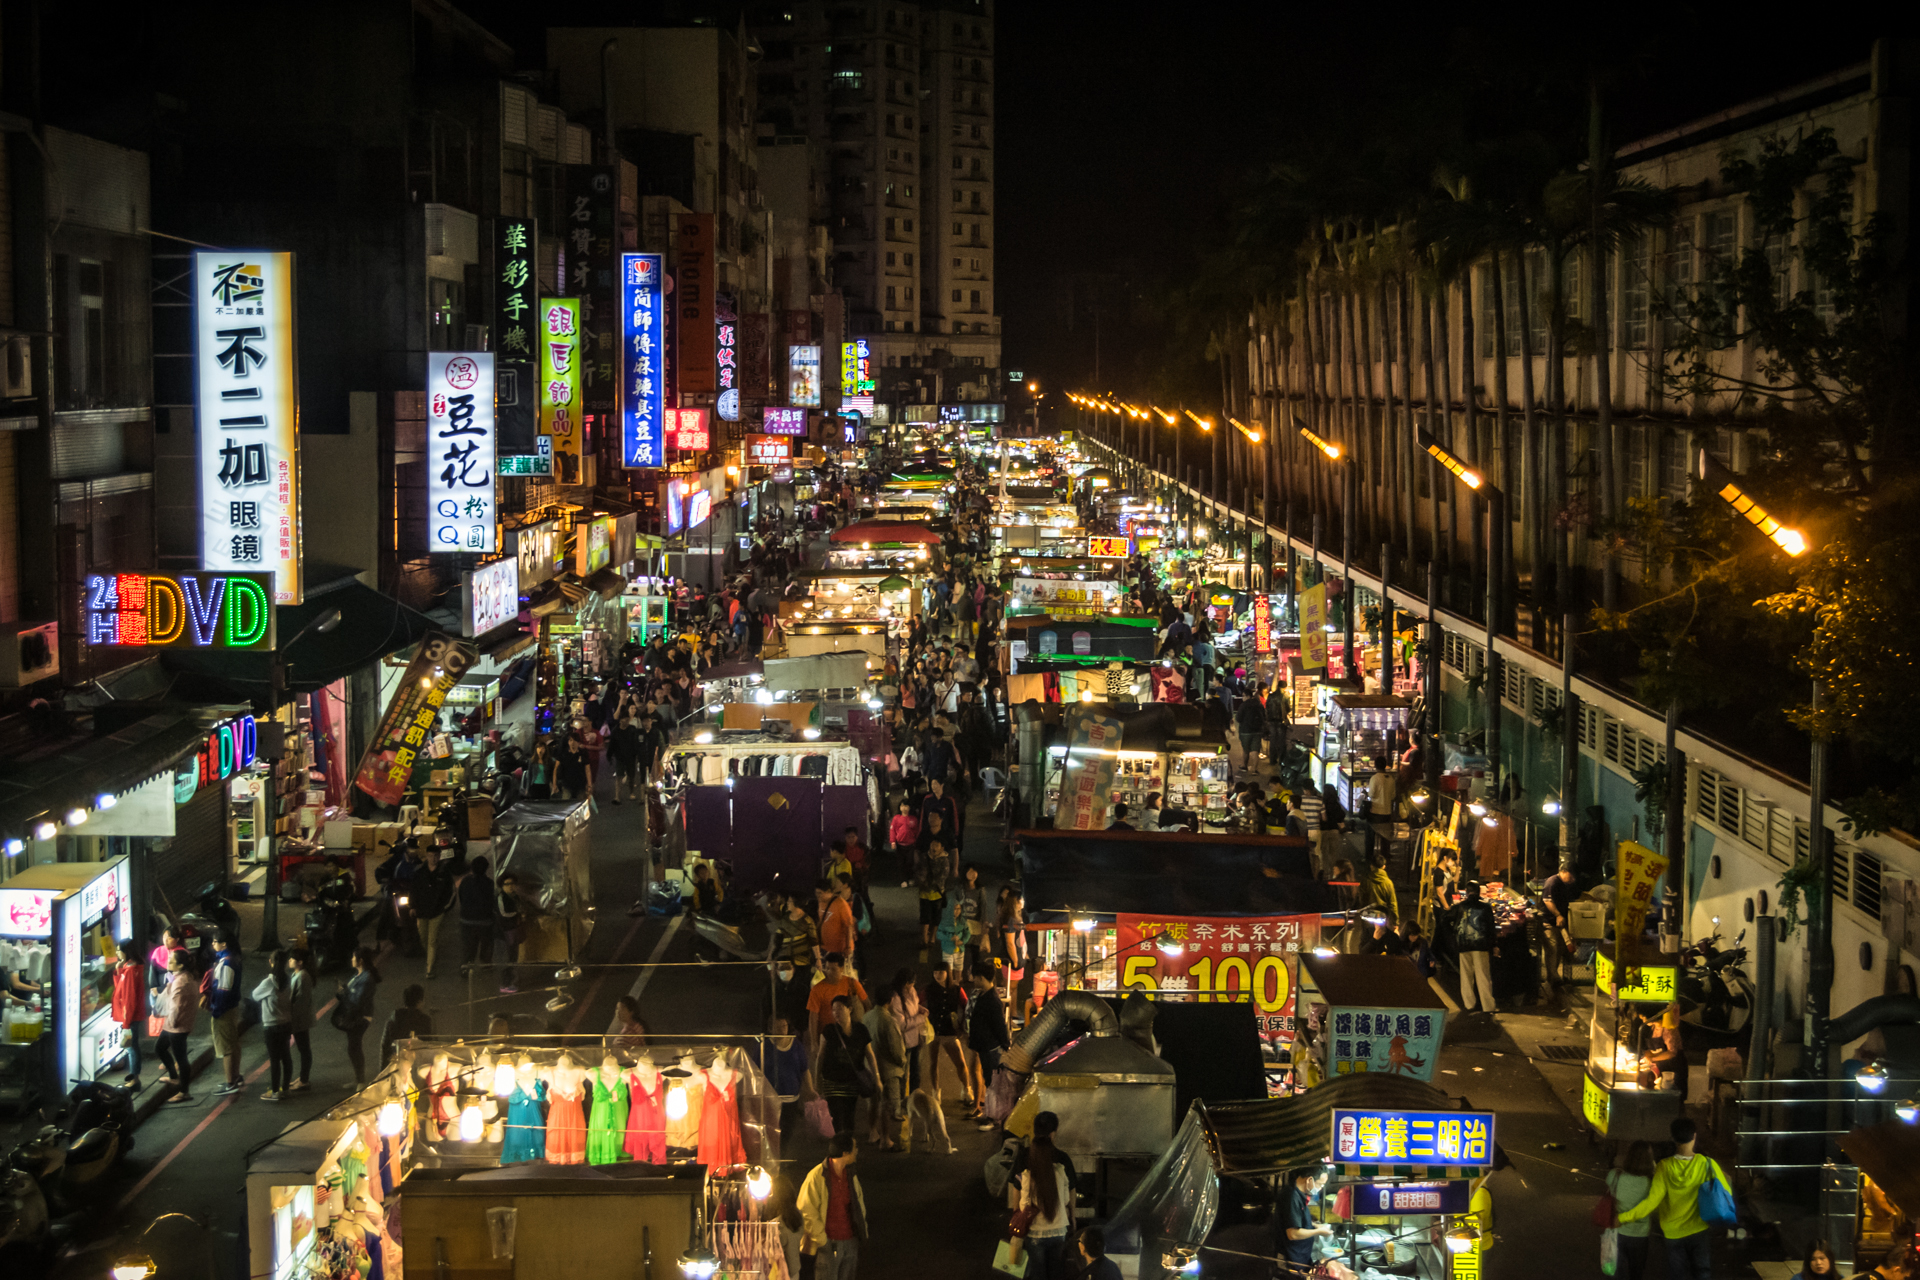 Zhongli Night Market 中壢夜市